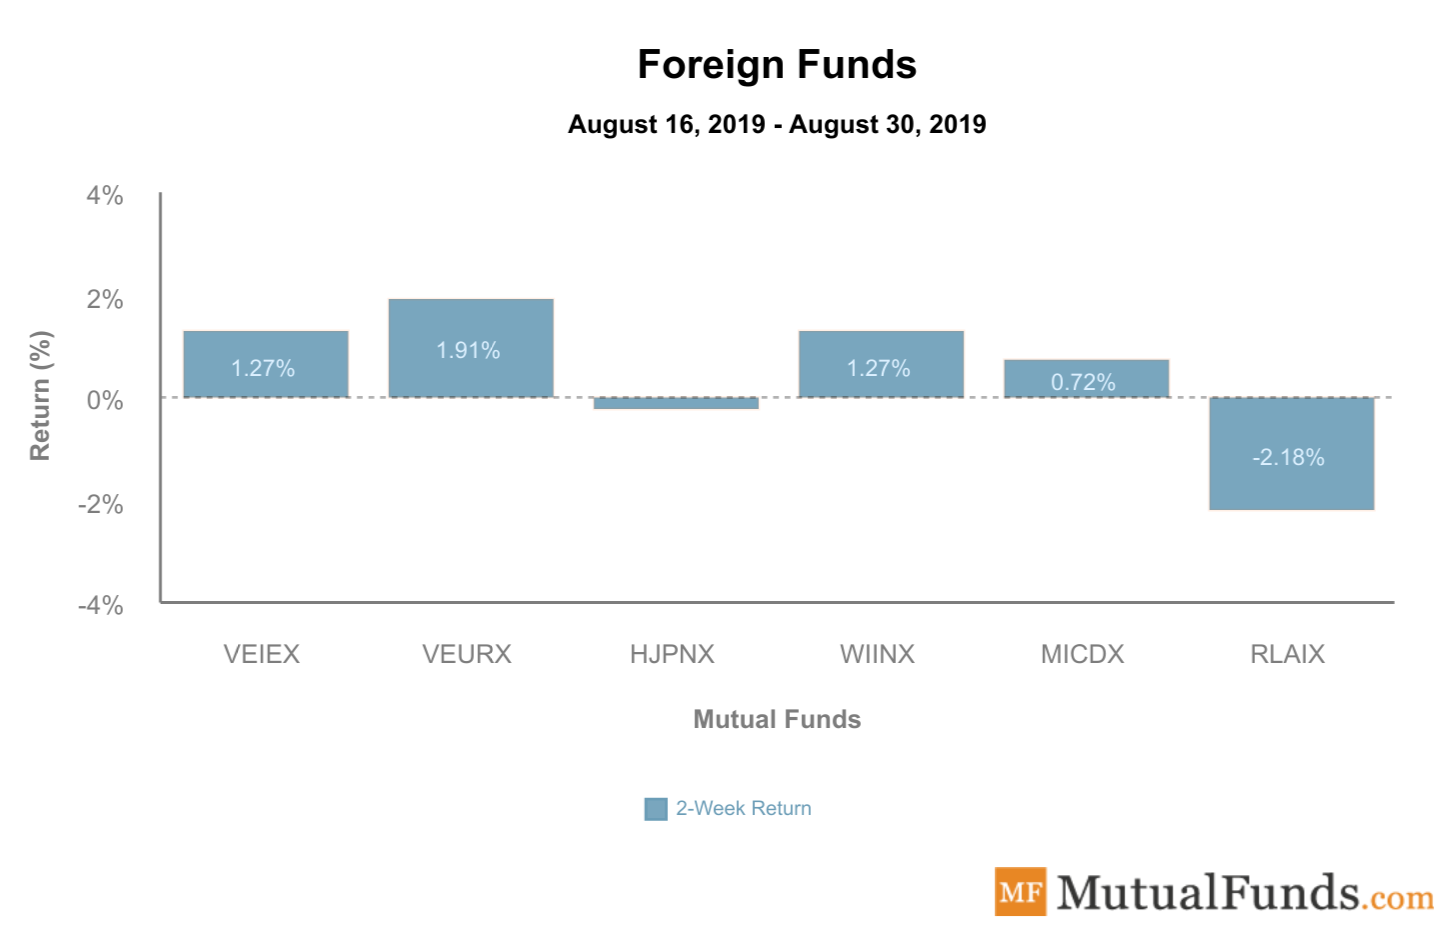 Foreign Funds Sep 3 2019